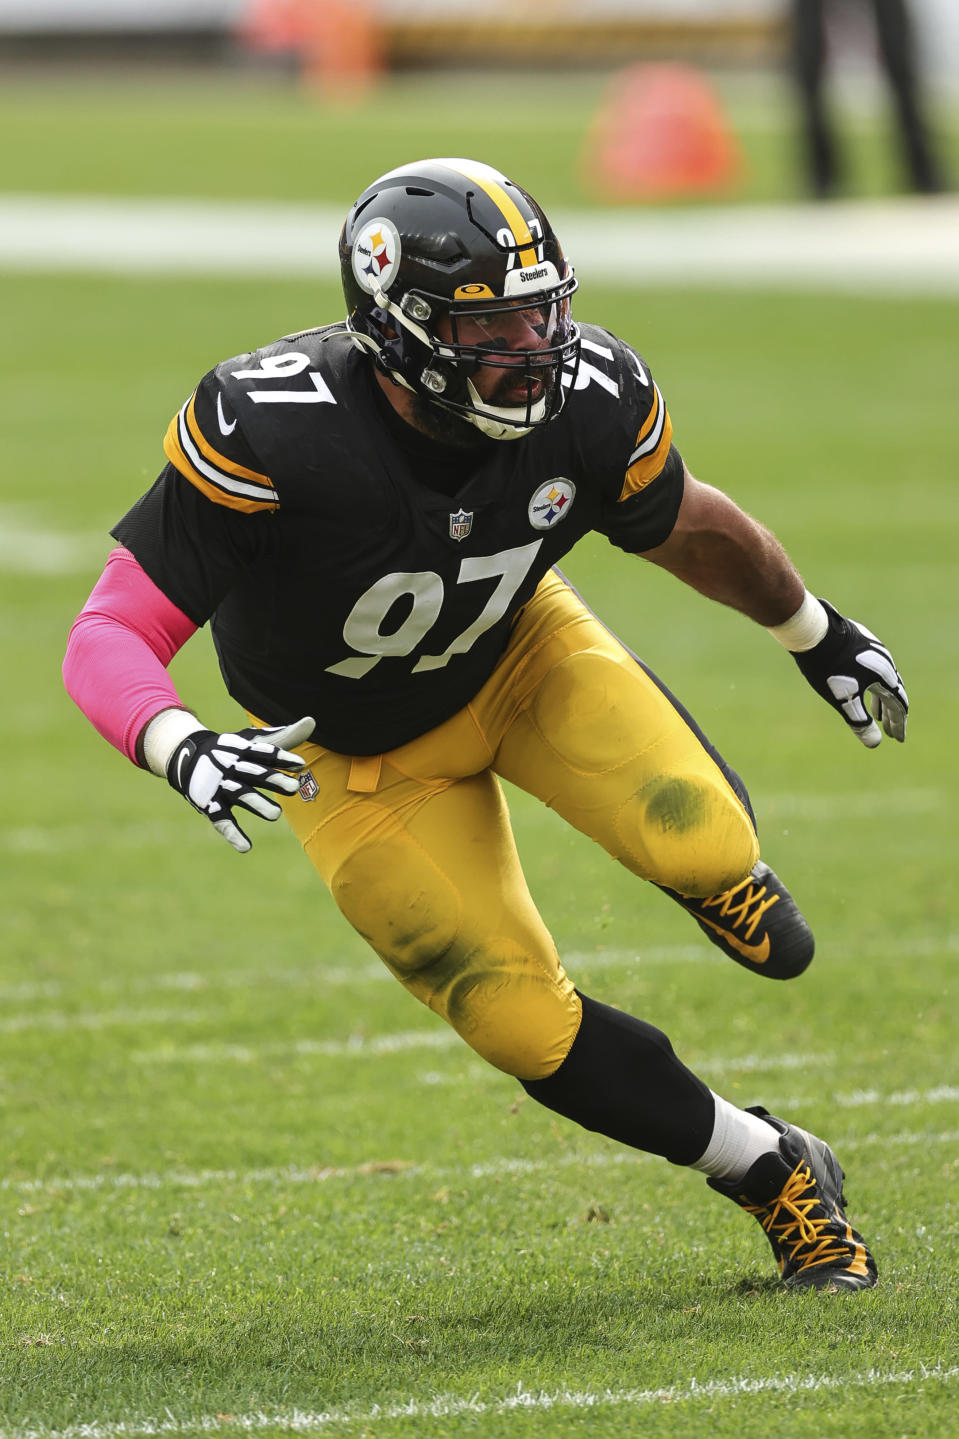 Pittsburgh Steelers defensive end Cameron Heyward (97) takes a defensive position during an NFL game against the Cleveland Browns, Sunday, Oct. 18, 2020, in Pittsburgh. The Steelers defeated the Browns 38-7. (Margaret Bowles via AP)